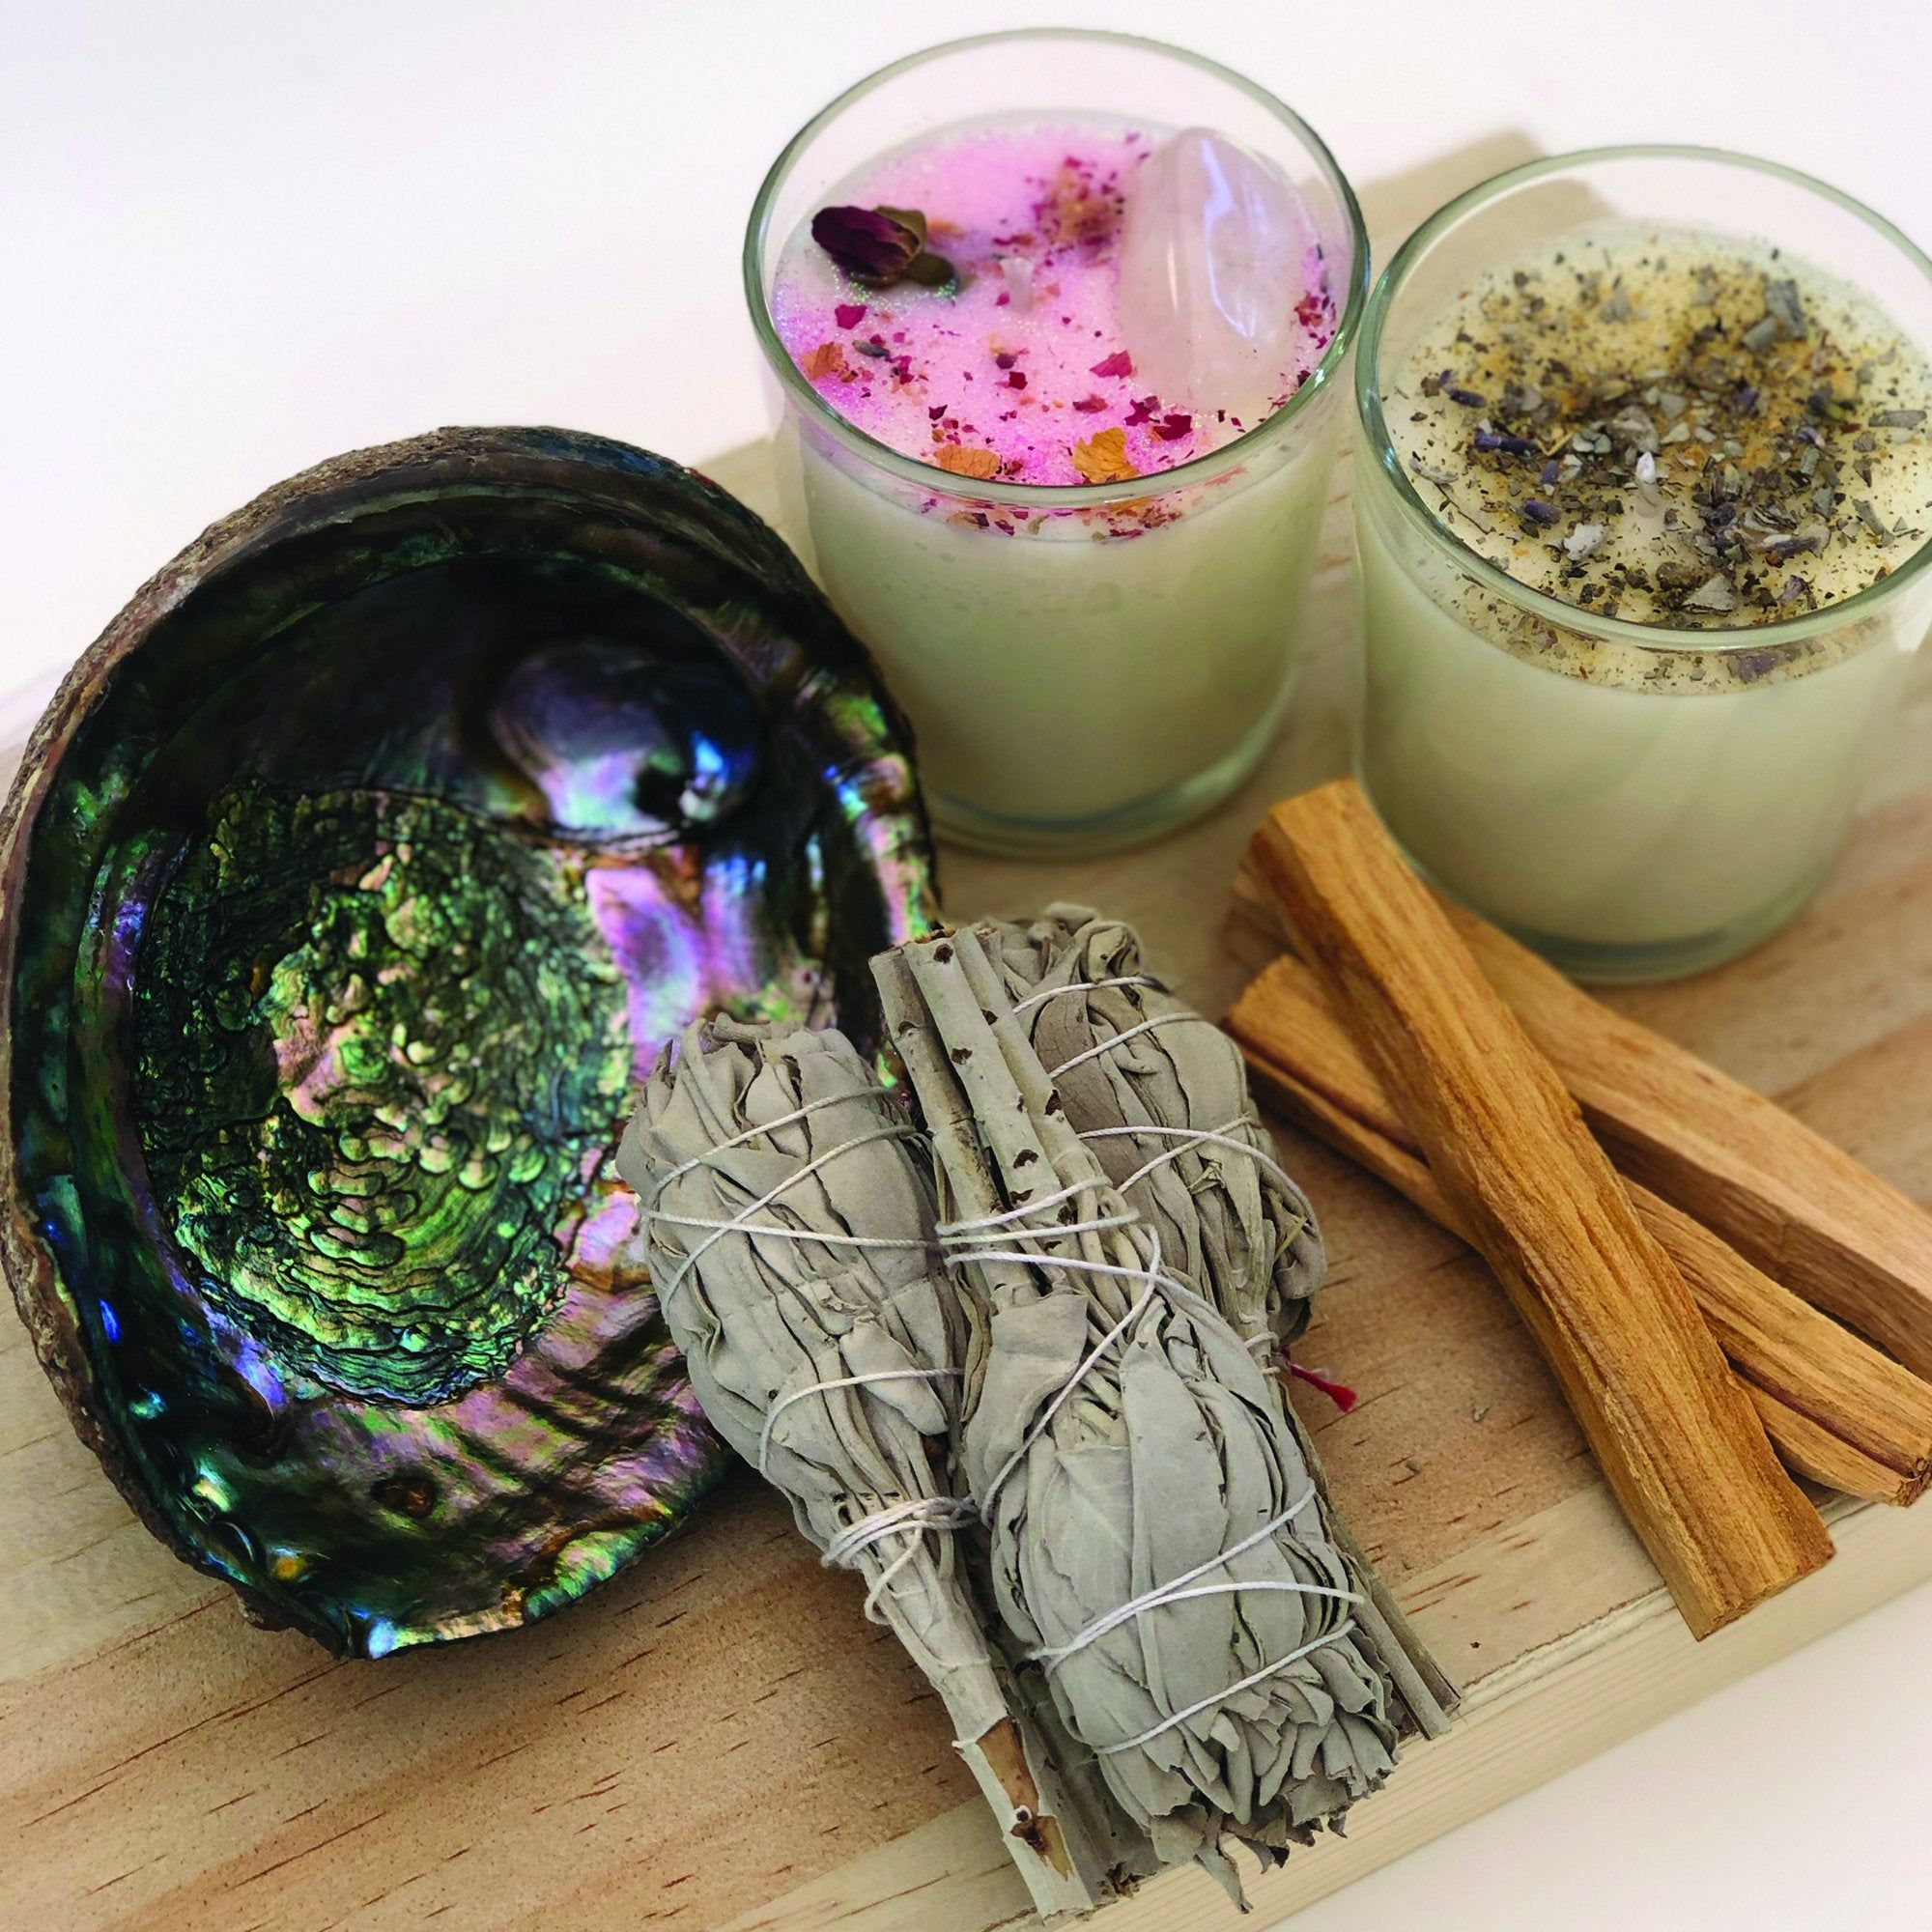 Cleansing and Blessing Love Kit - Smudging Love Attraction ...